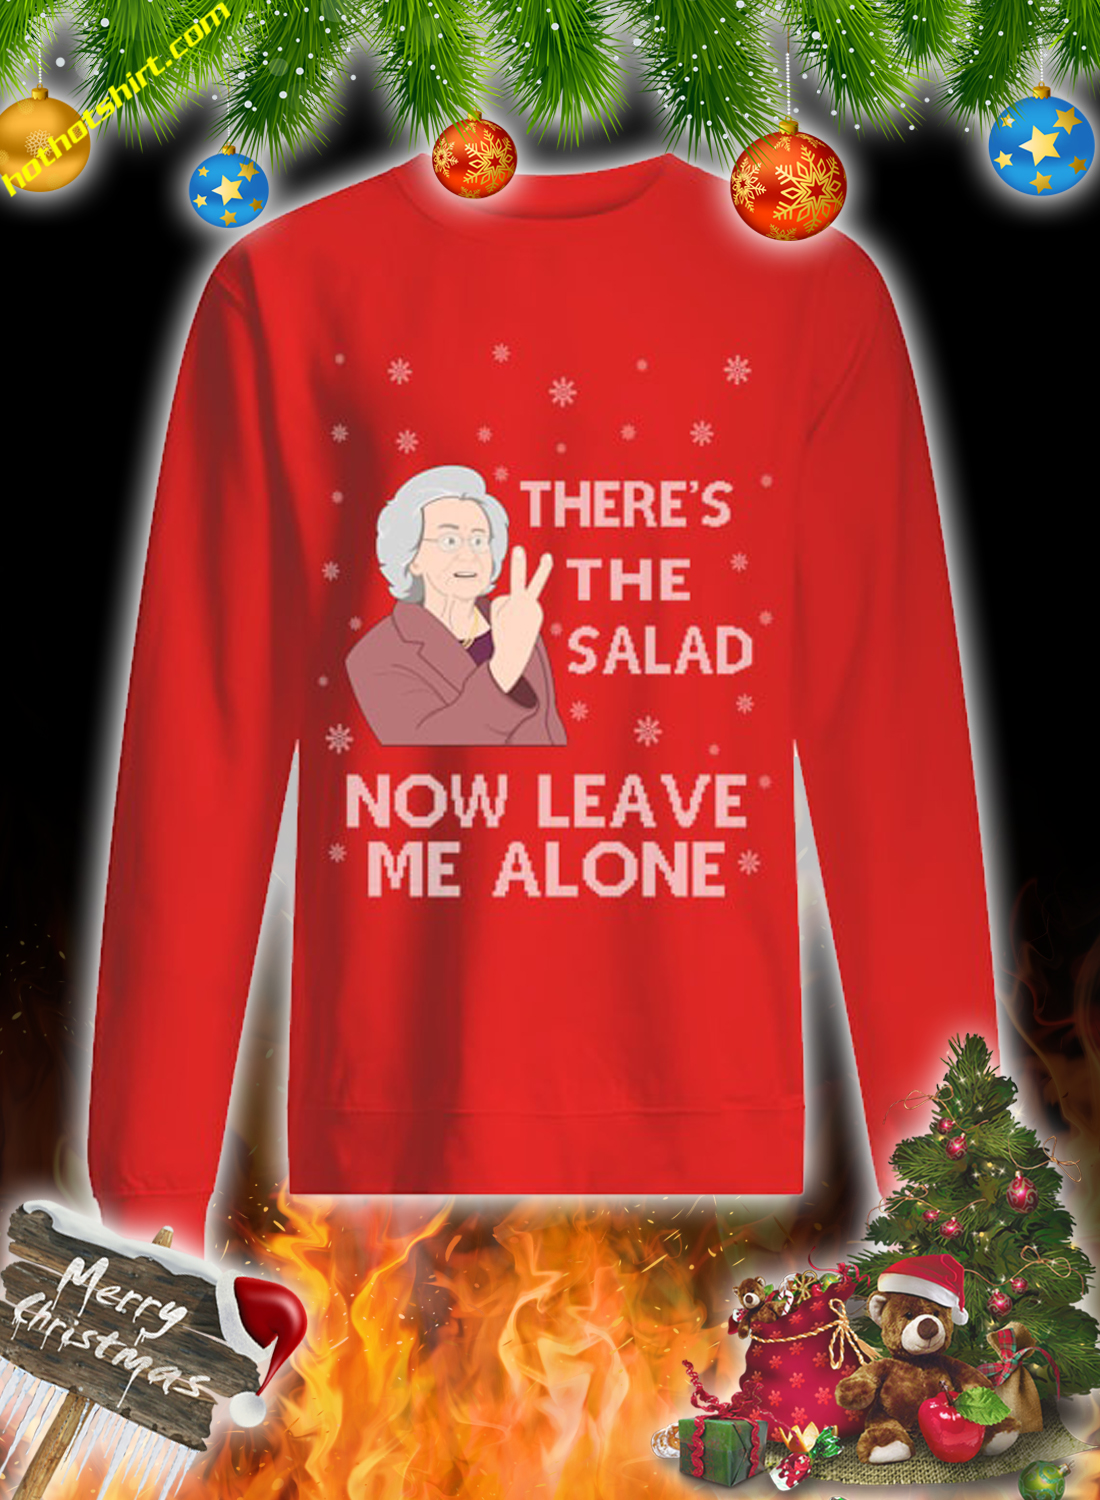 There's the salad now leave me alone christmas sweatshirt and jumper 4